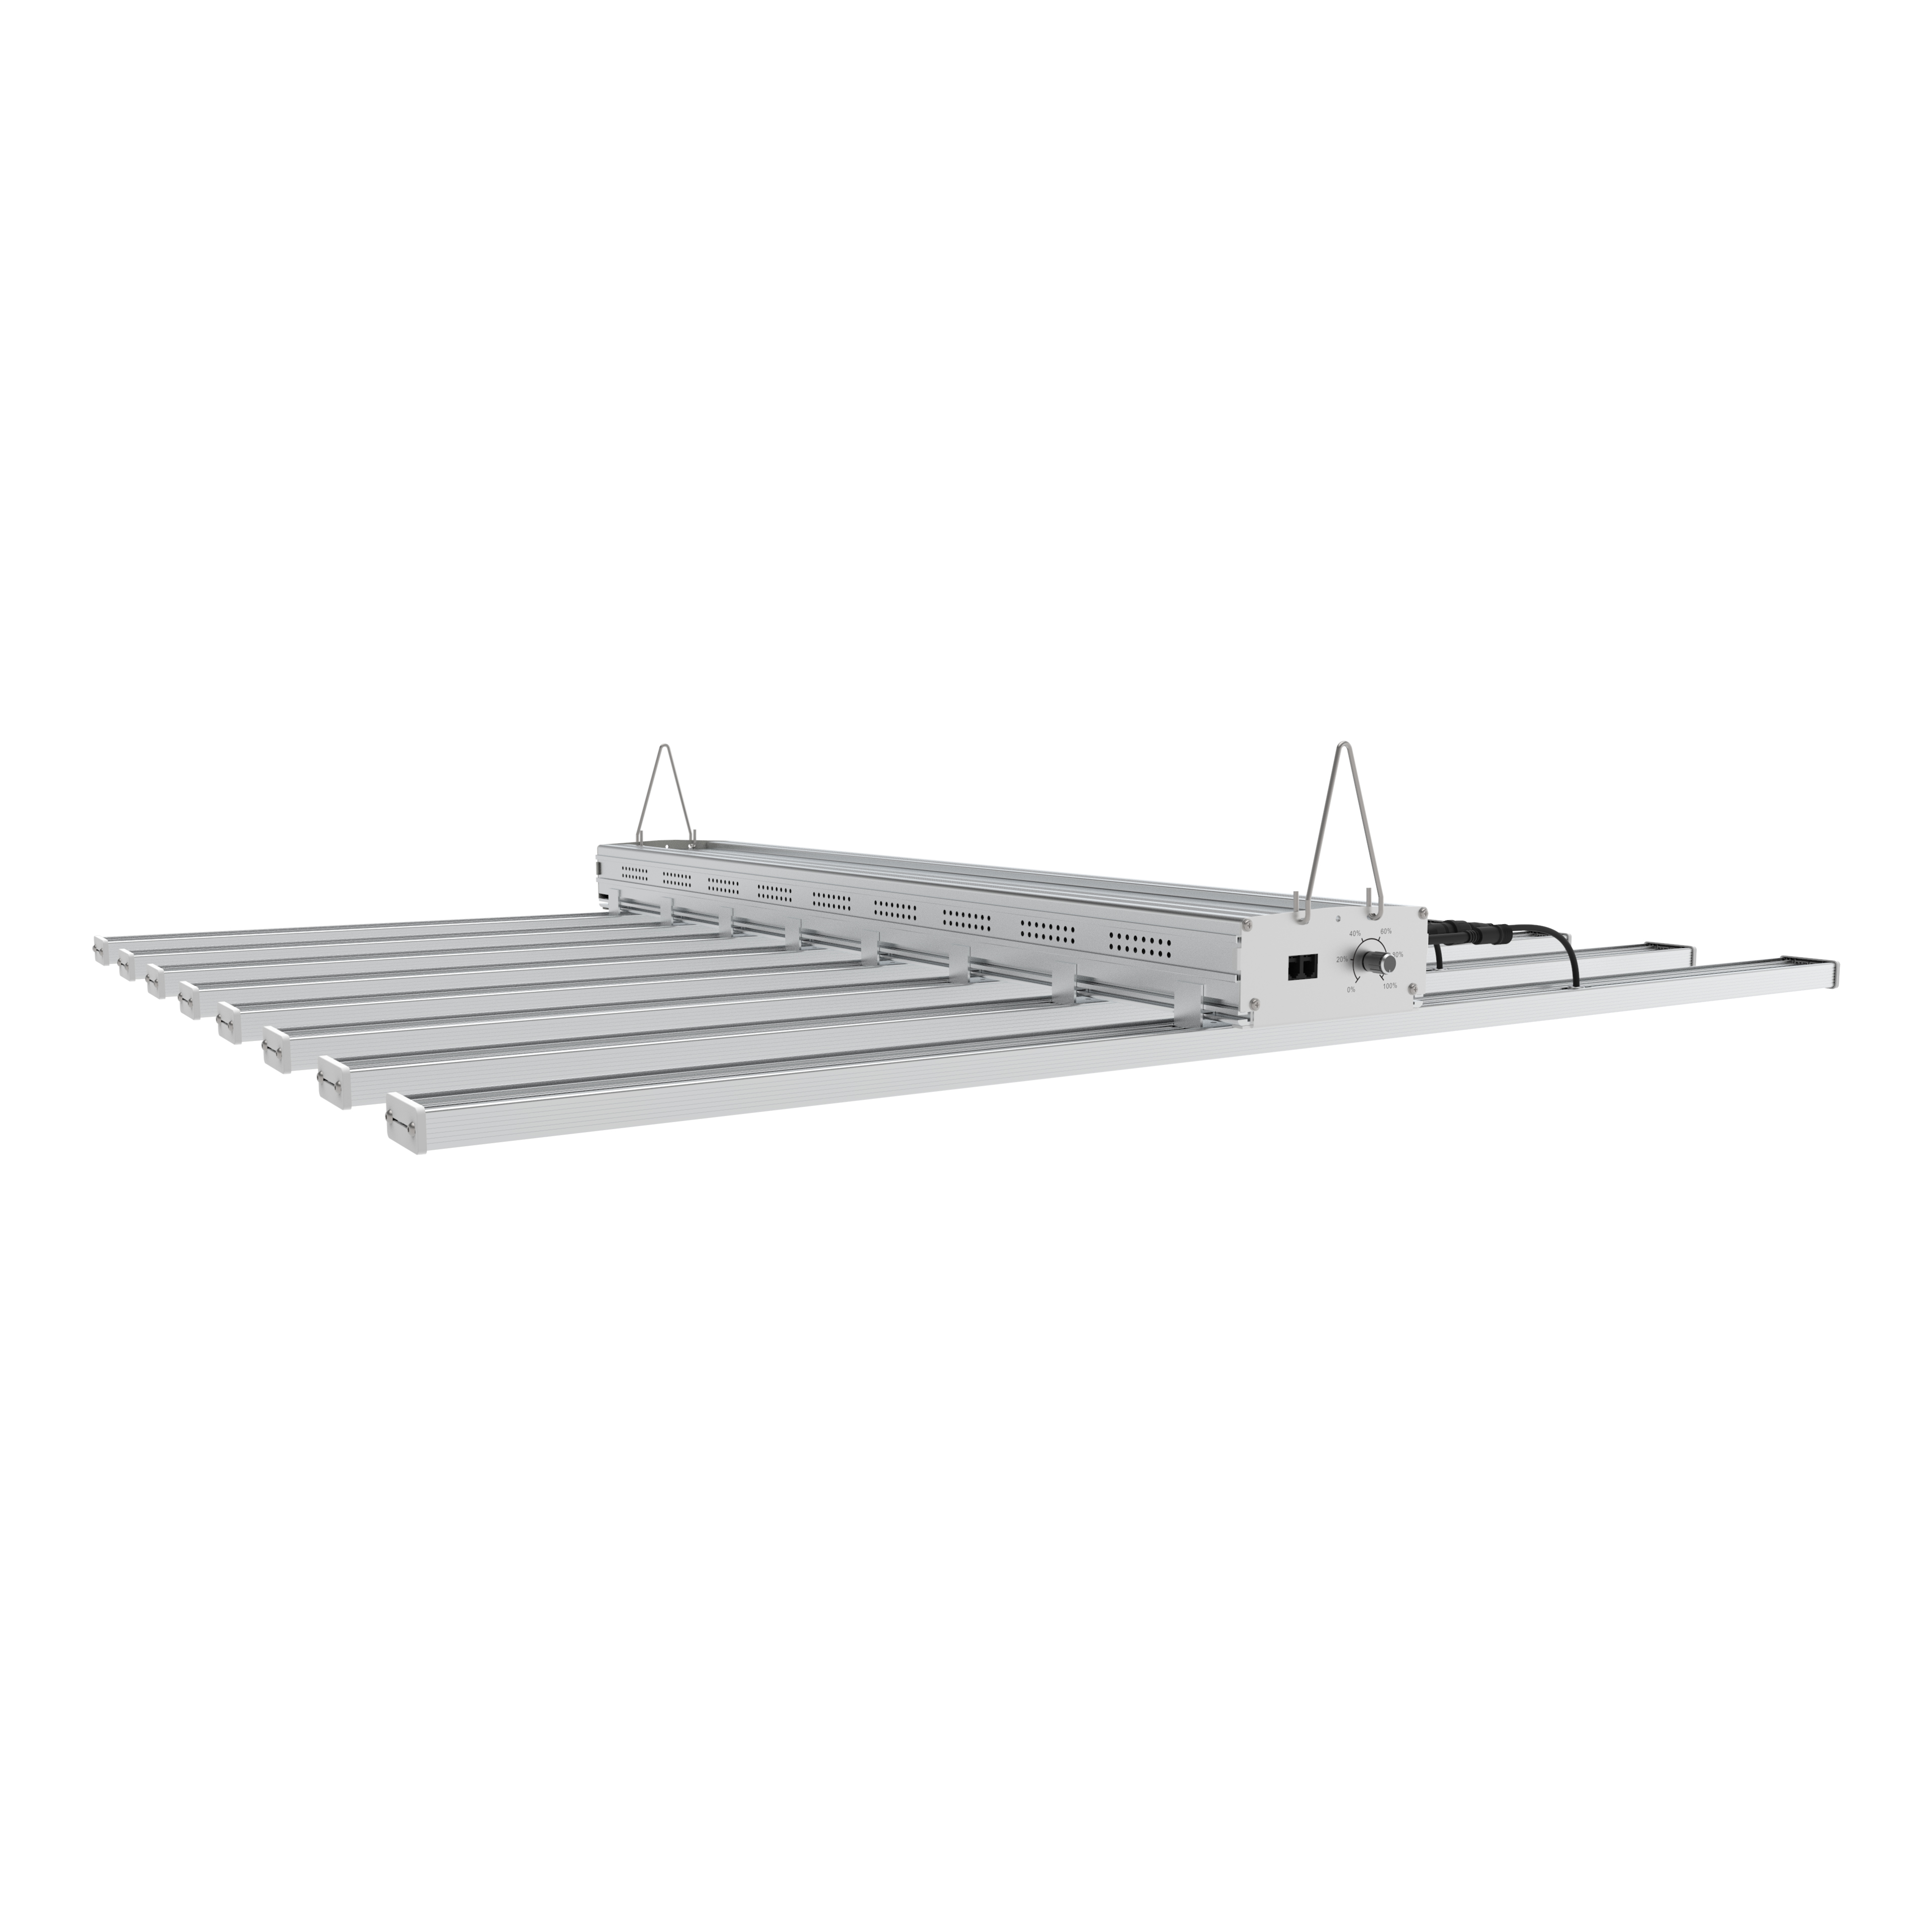 Led plant 600 w industriële led high bay groeien bar lys Led licht groeien bar